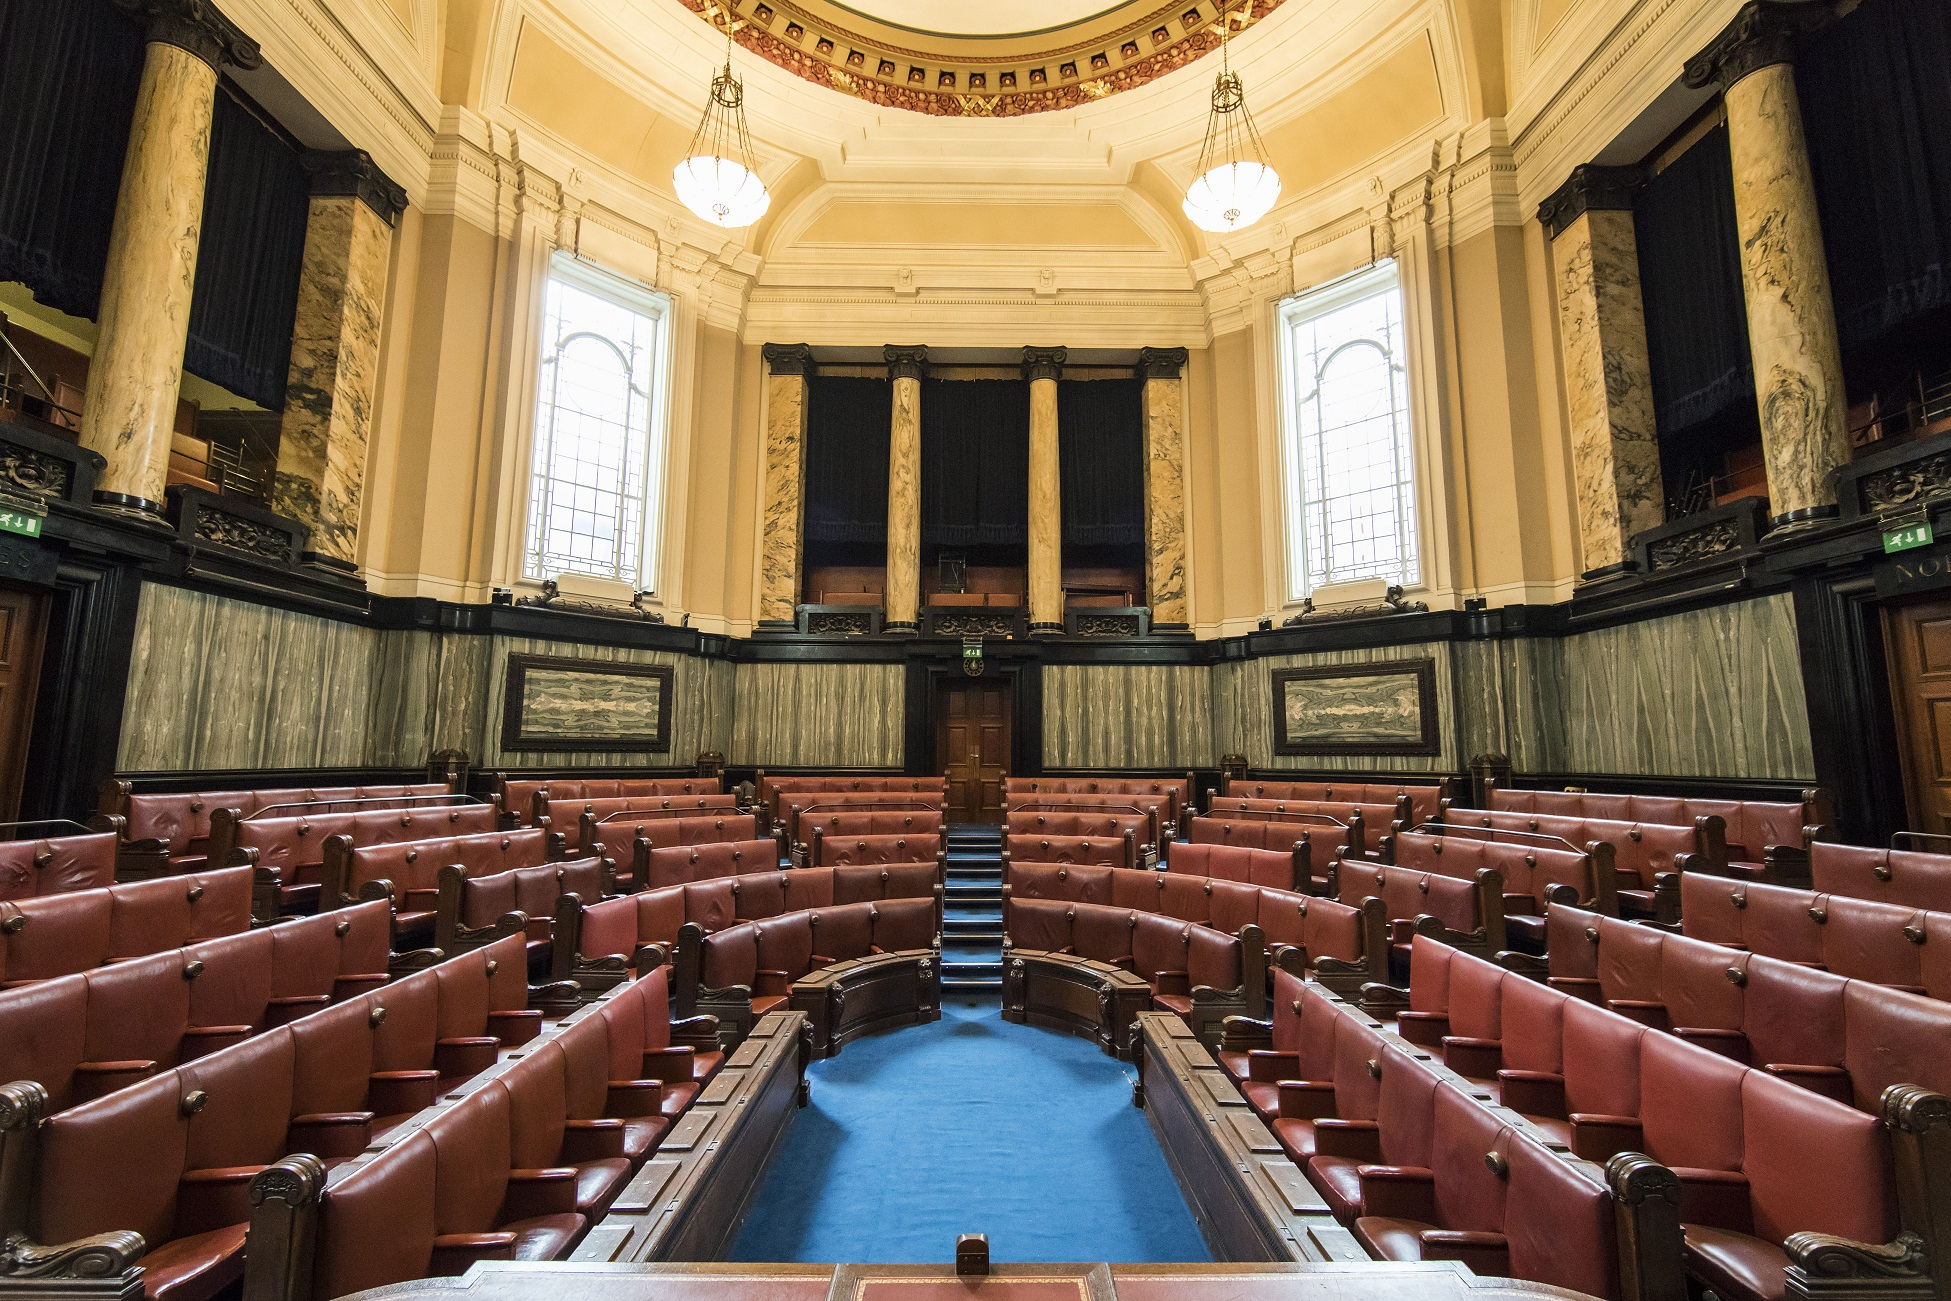 The courtroom setting in the chamber of County Hall